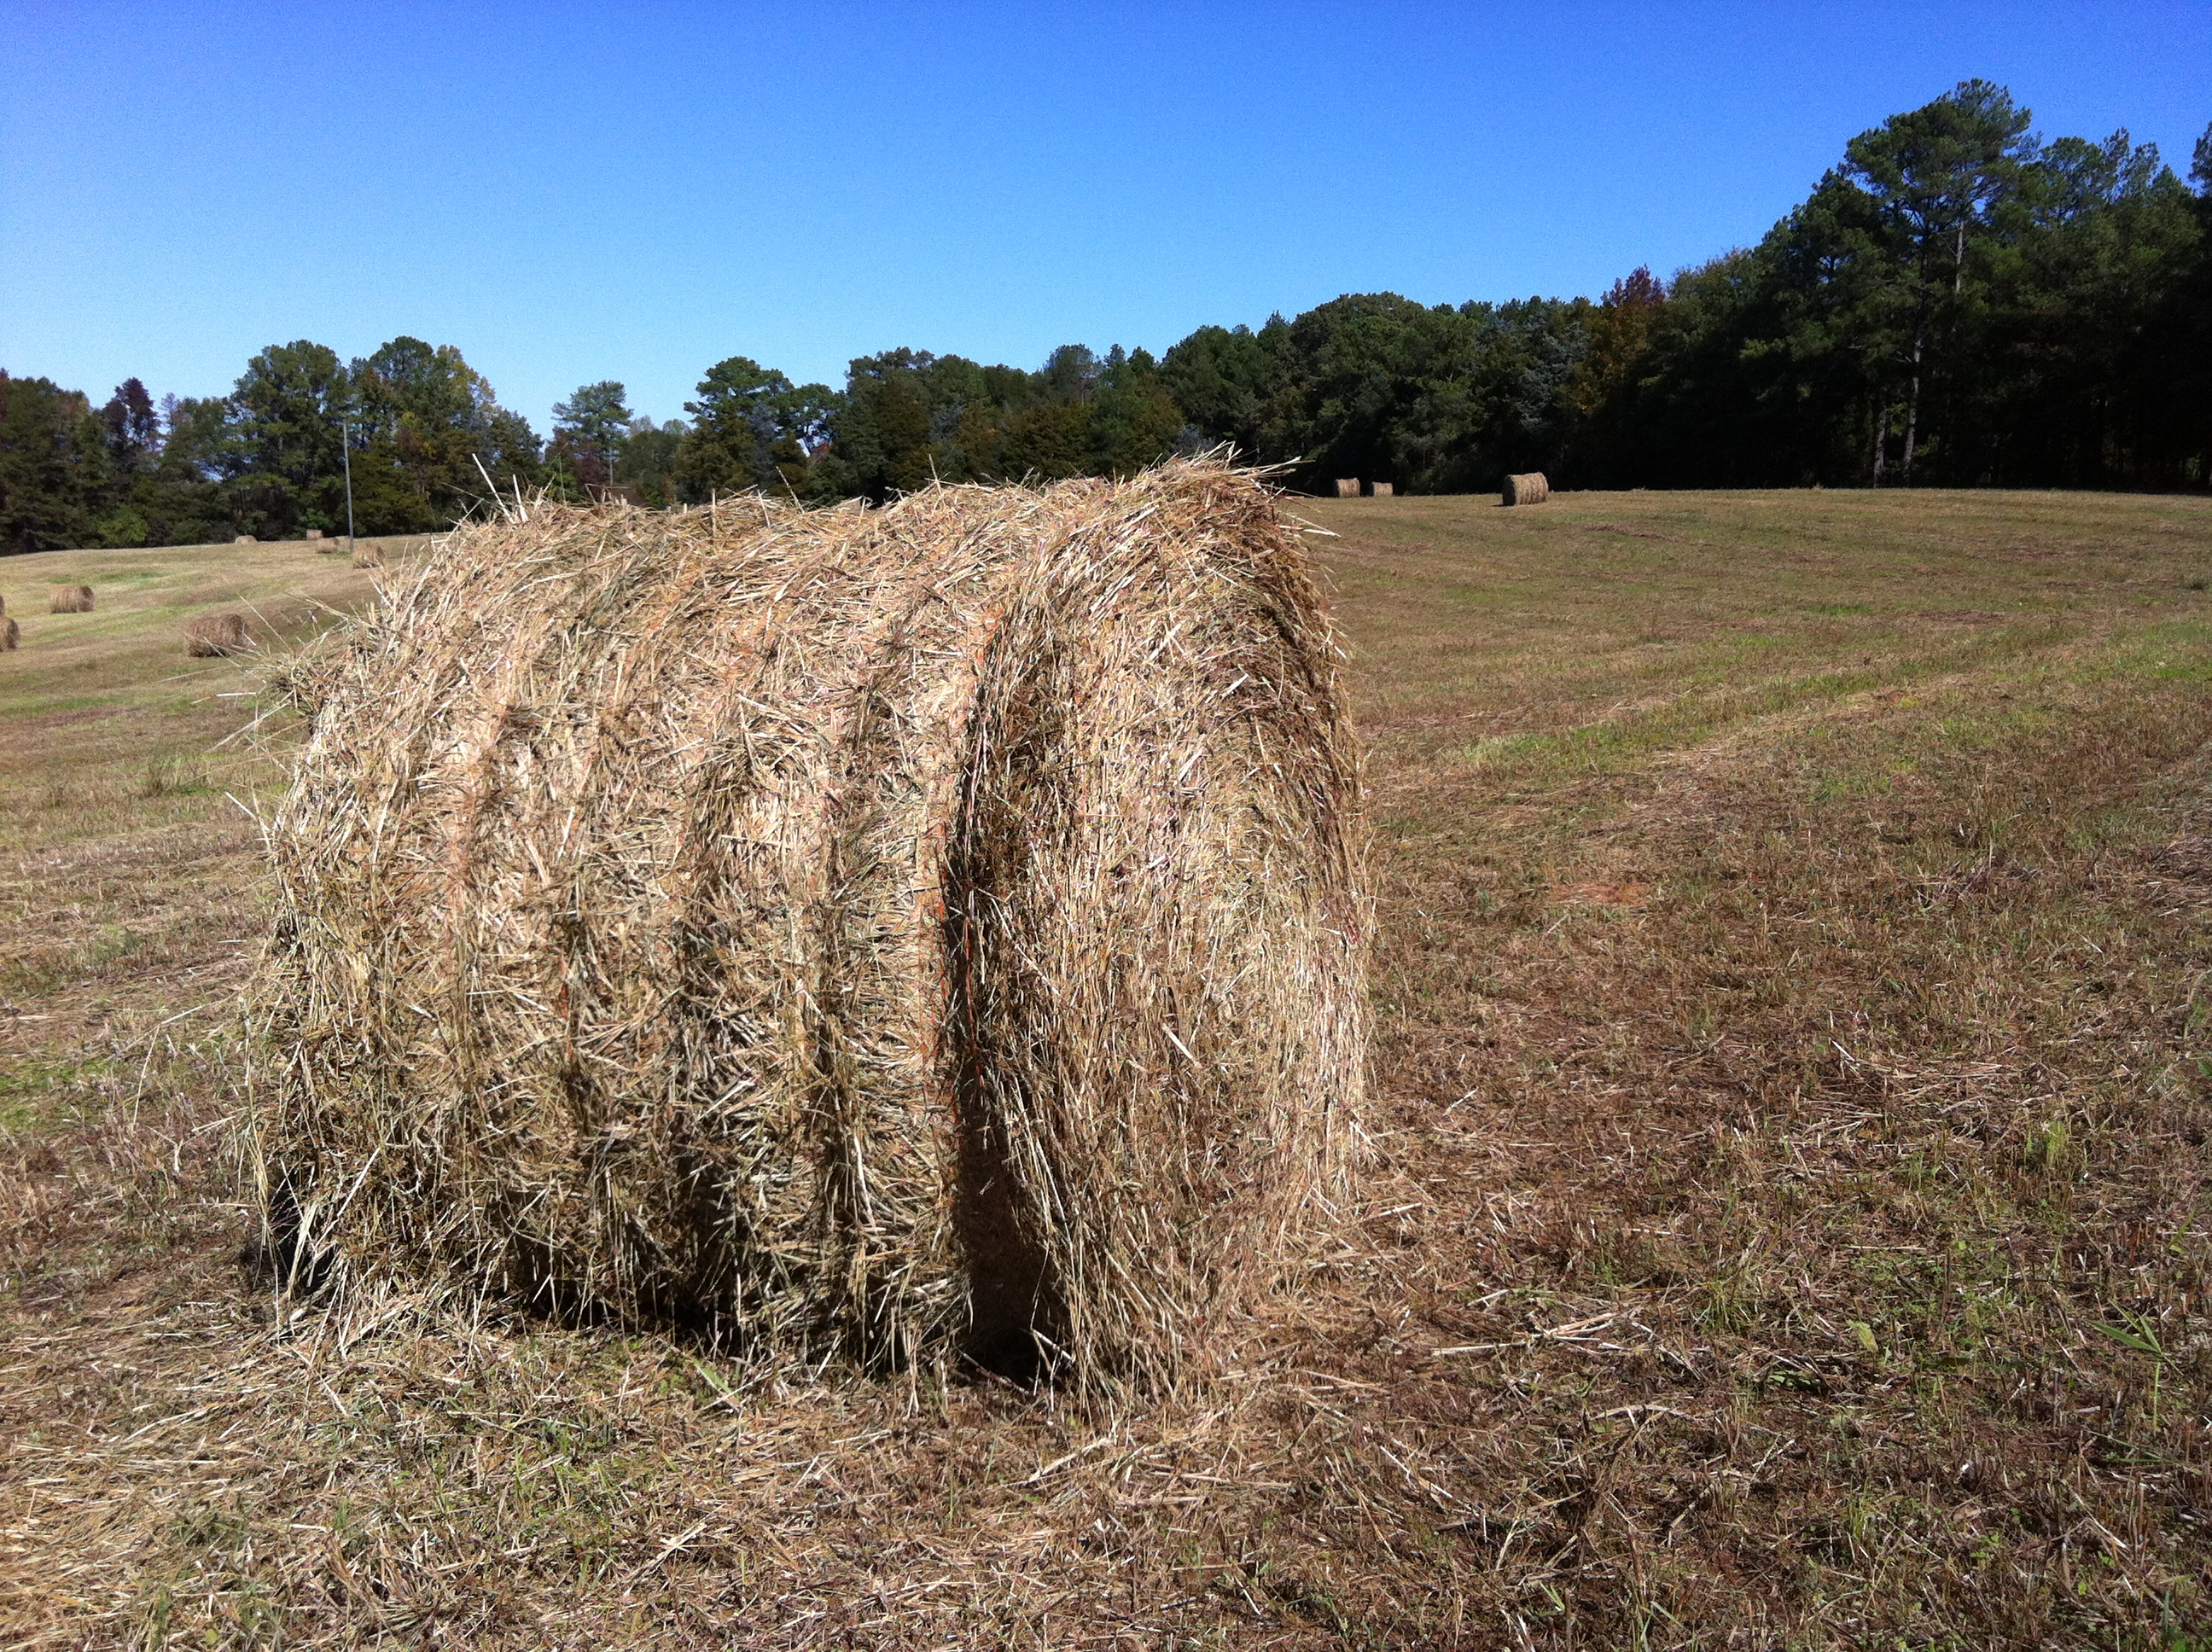 Hay Bale, Farm Near Athens, Georgia